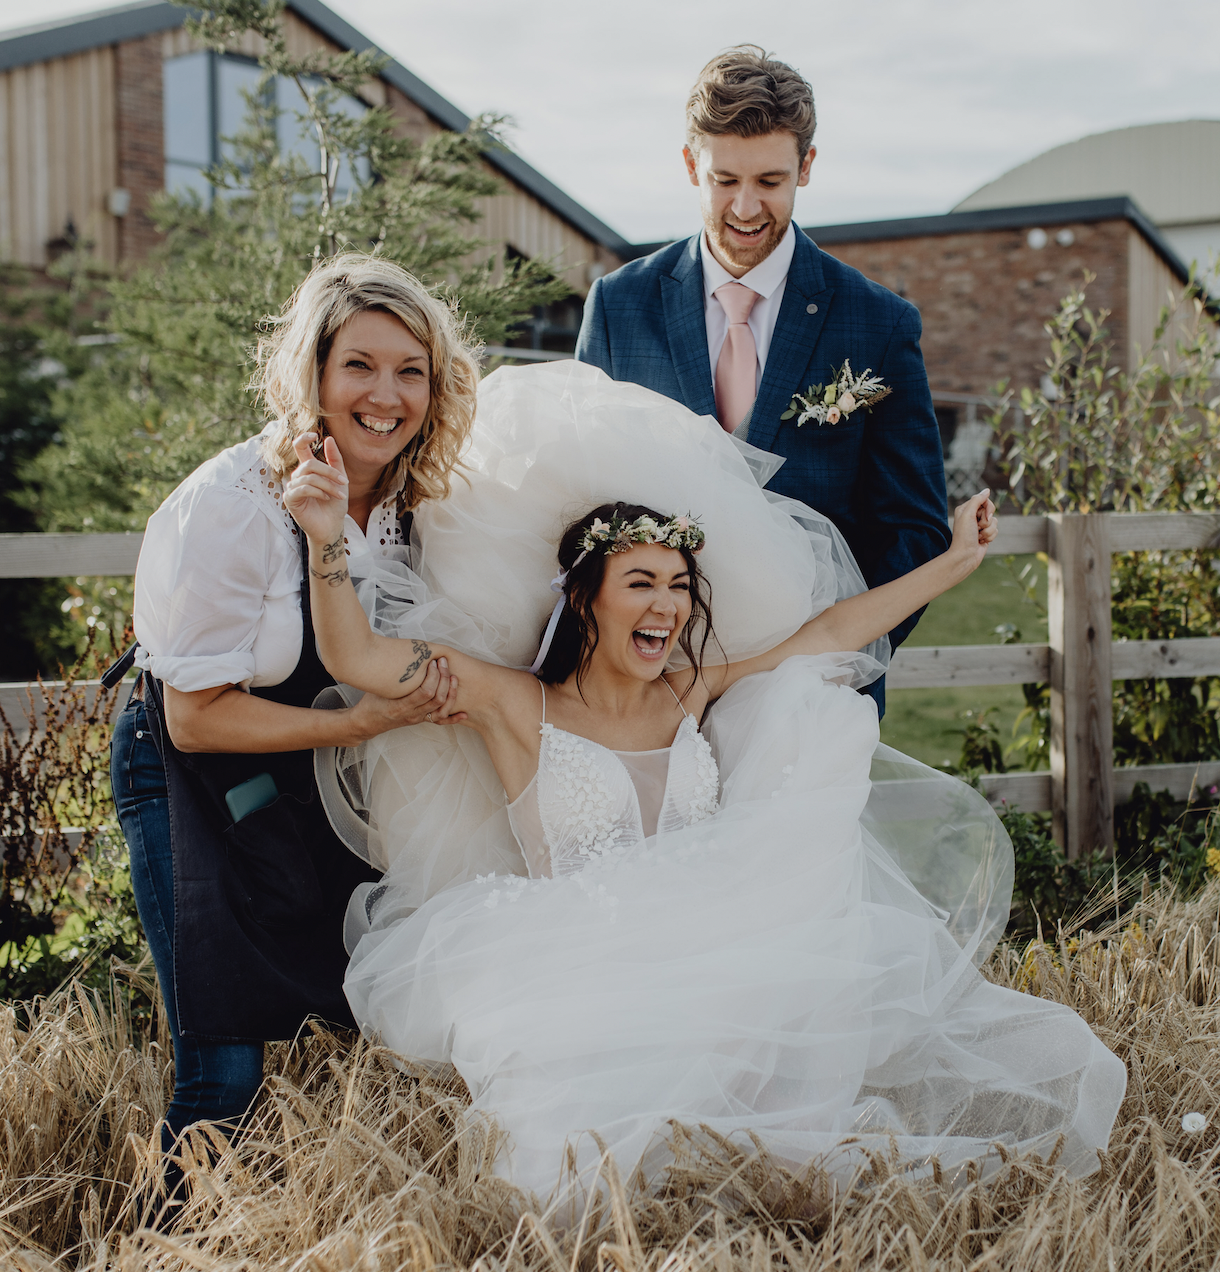 A booming wedding business that started in a garage - Wonderland Blooms